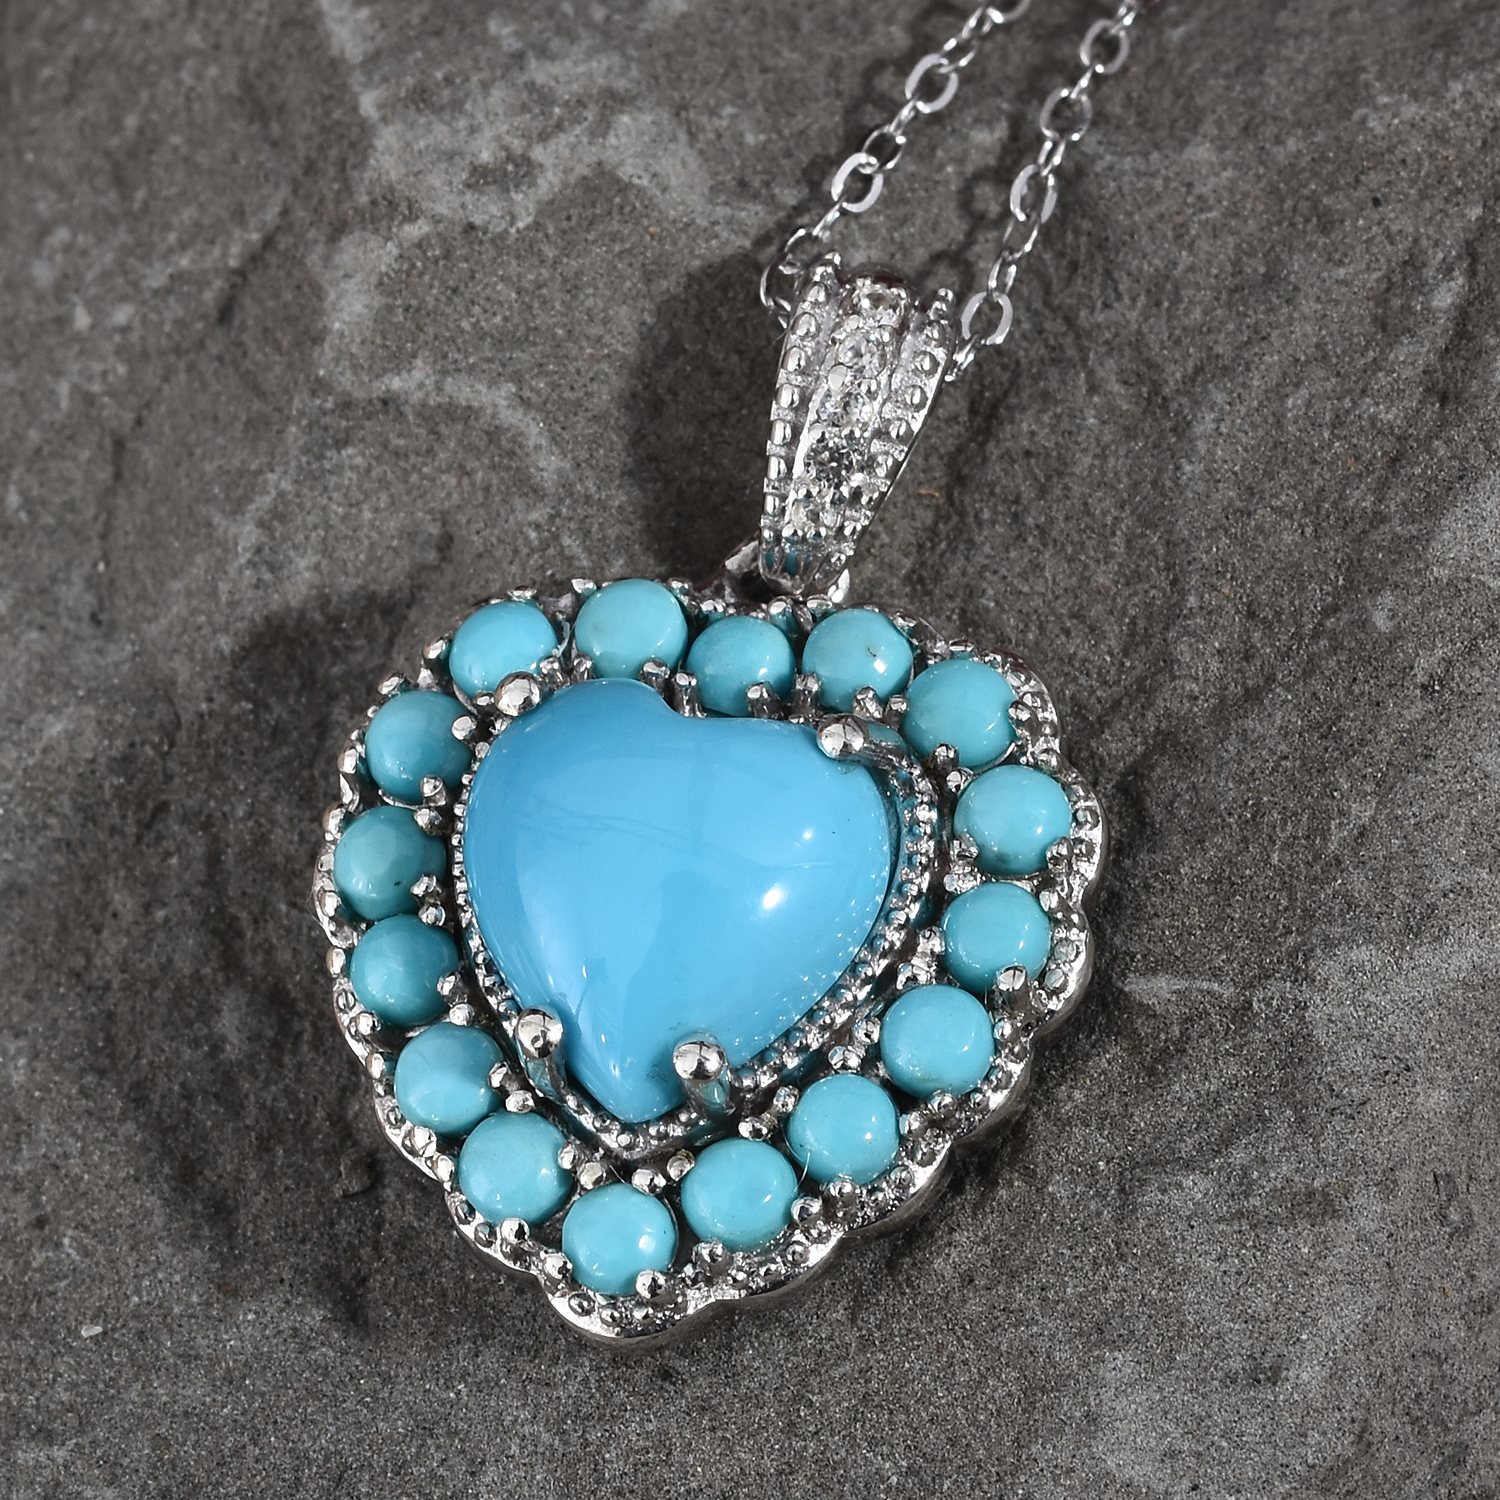 Turquoise heart pendant draped over slate-colored stone.